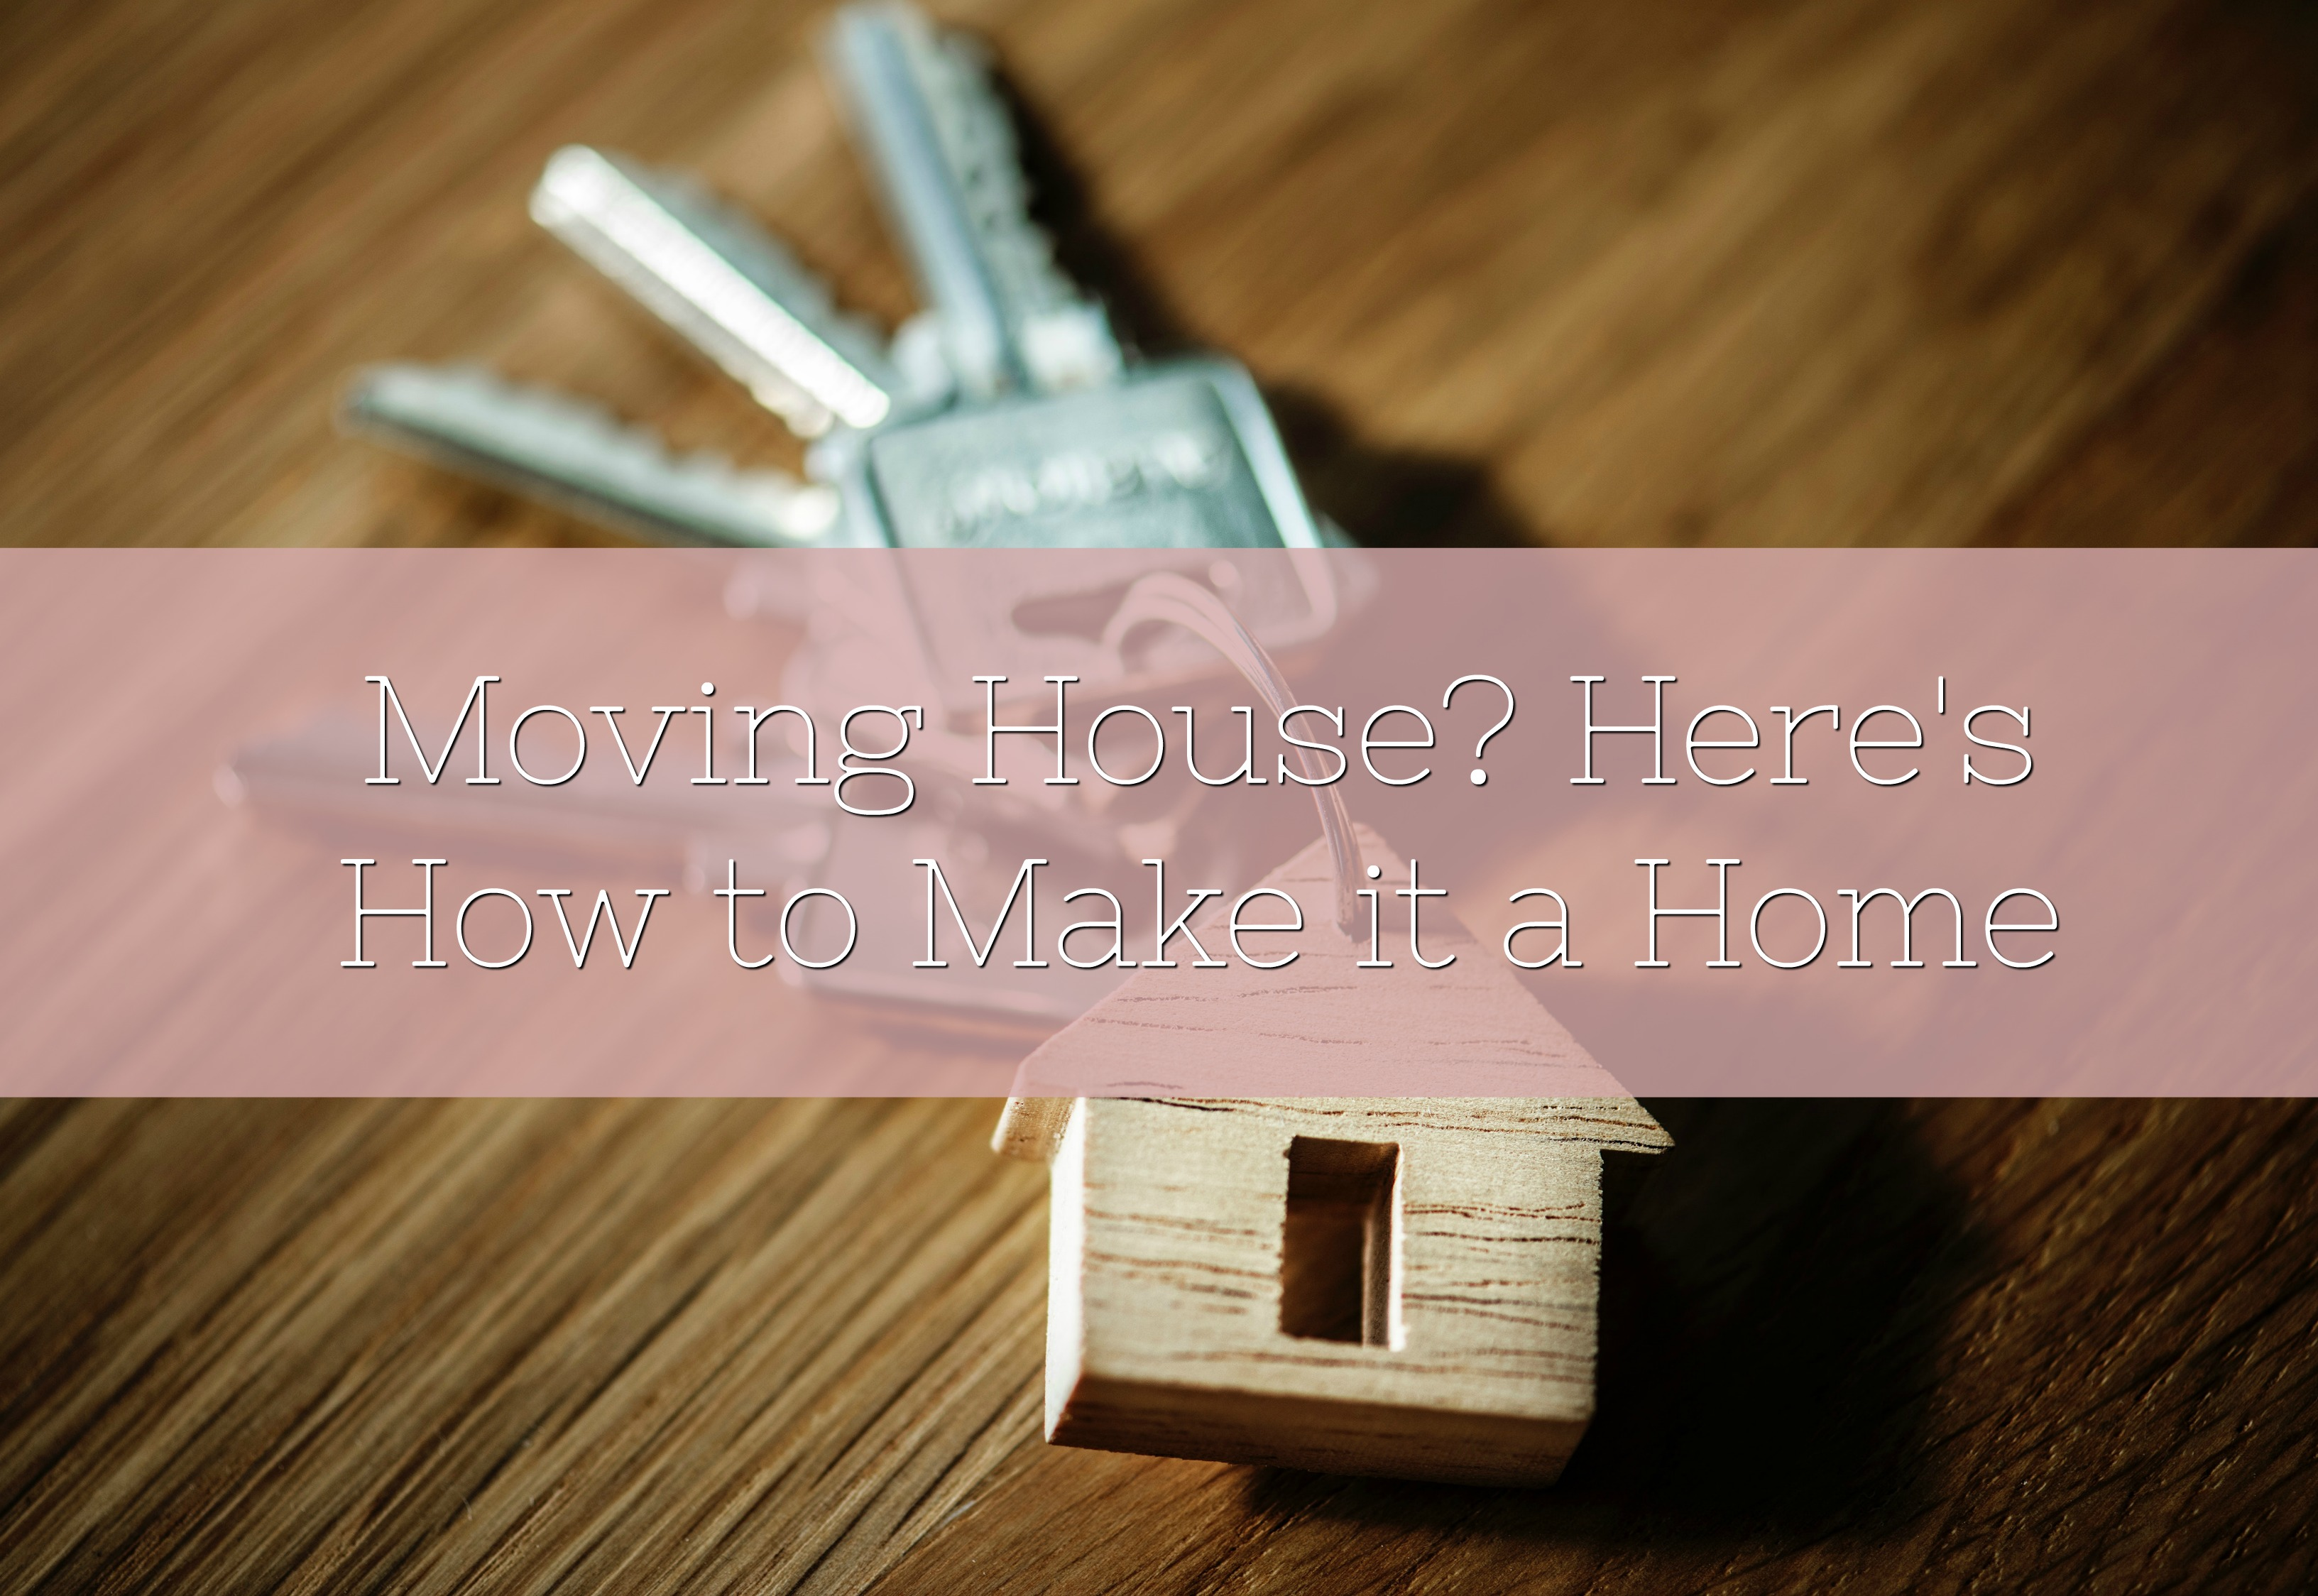 Moving Houses? Here's How to Make it a Home